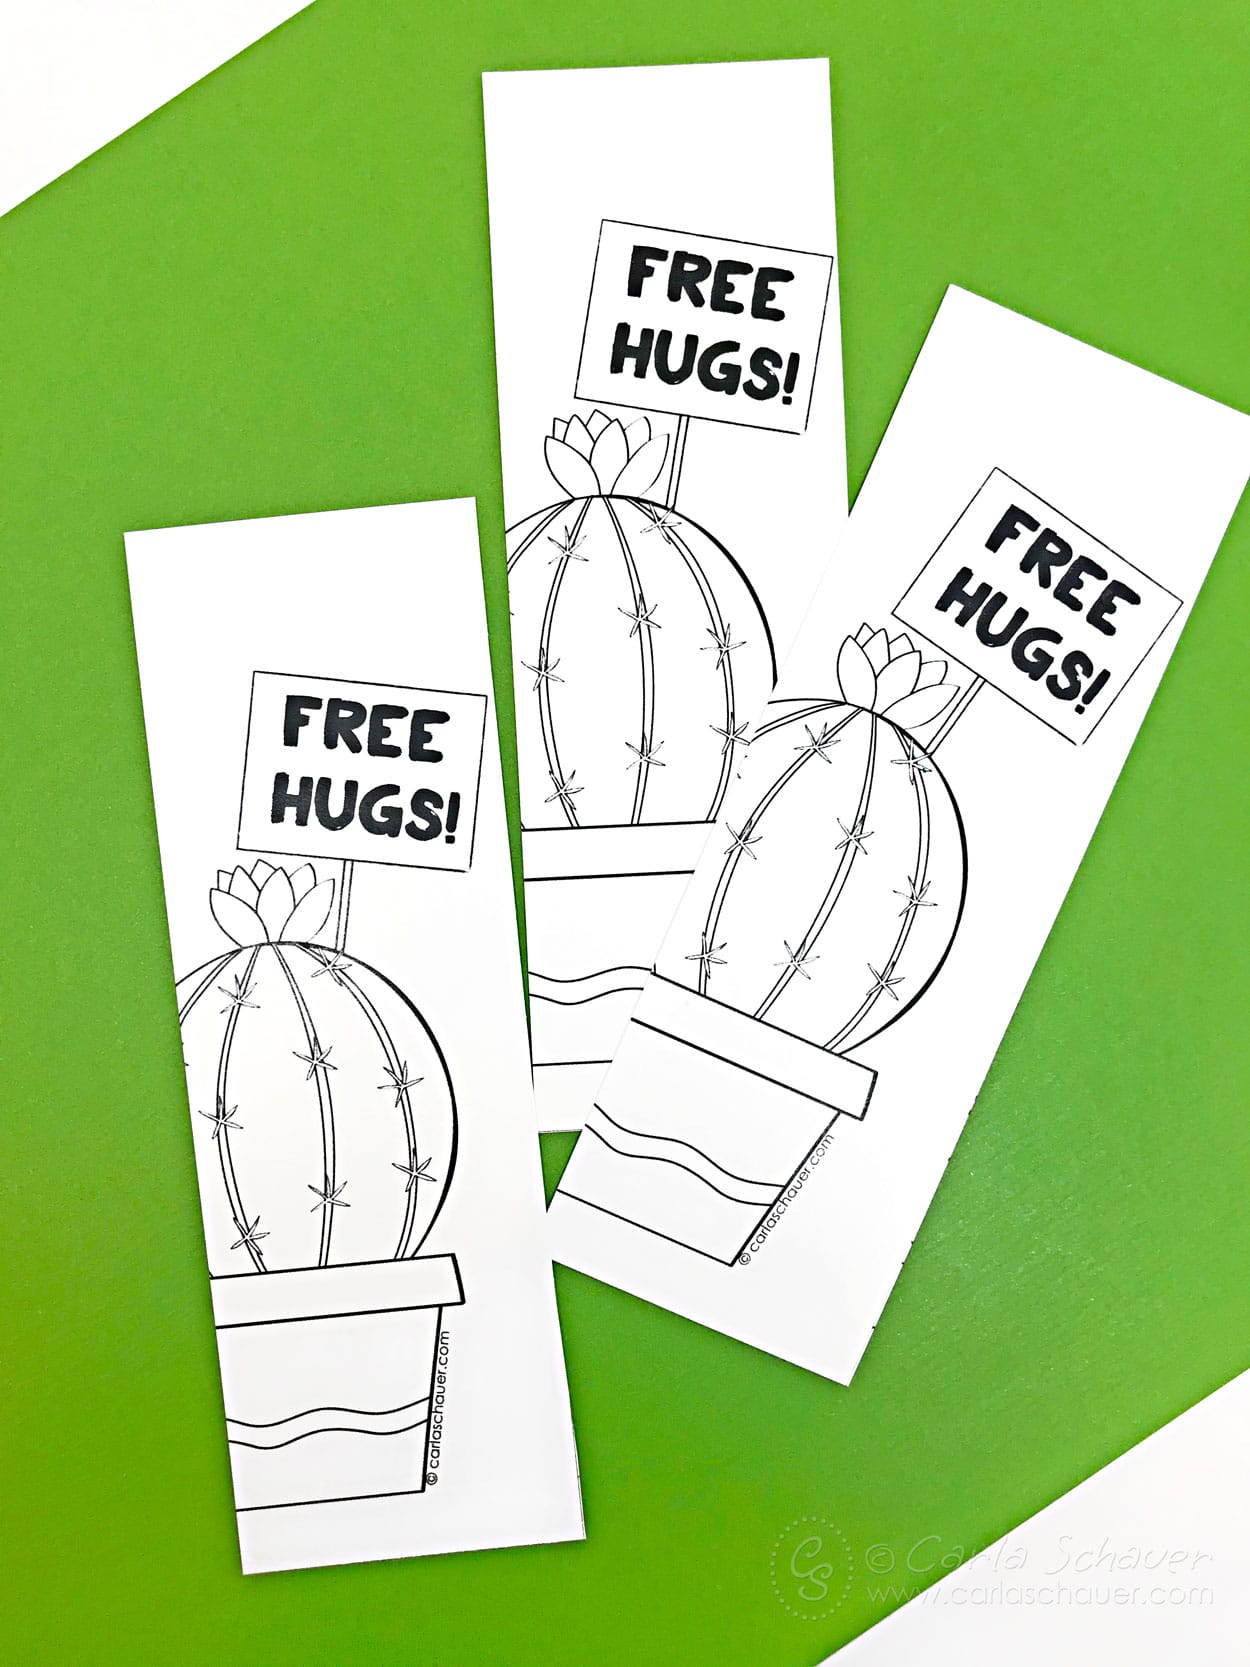 3 printed cactus pun bookmarks on green background